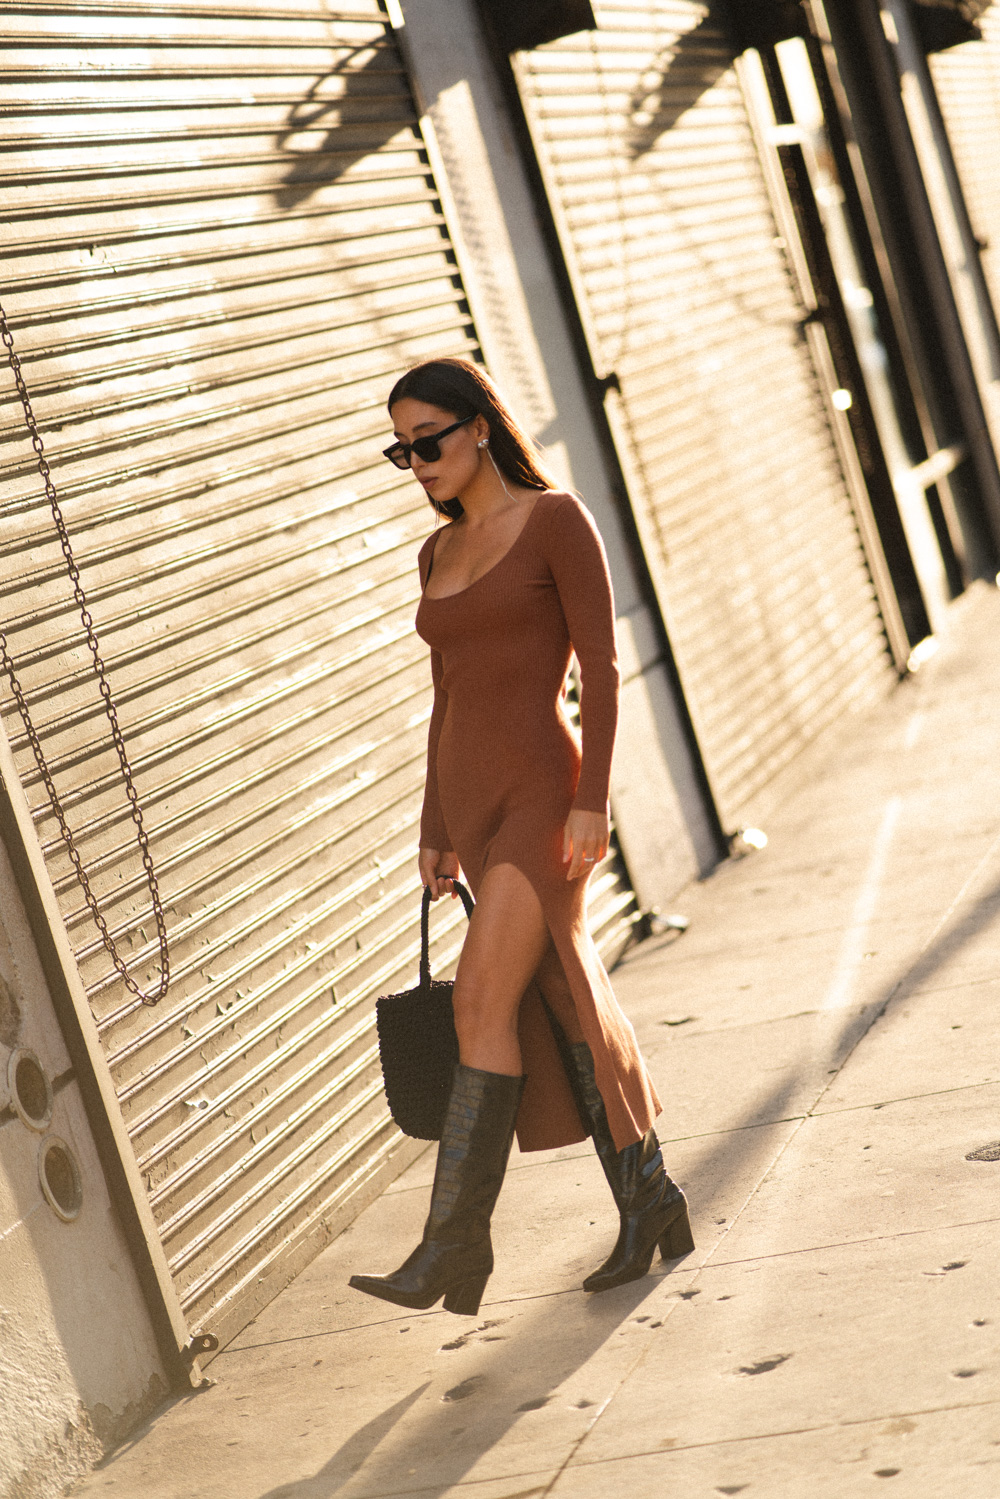 LOVE OR MONEY blog by Emily Tong wearing Aritzia Wilfred Maeve Dress and Mango Knee high boots